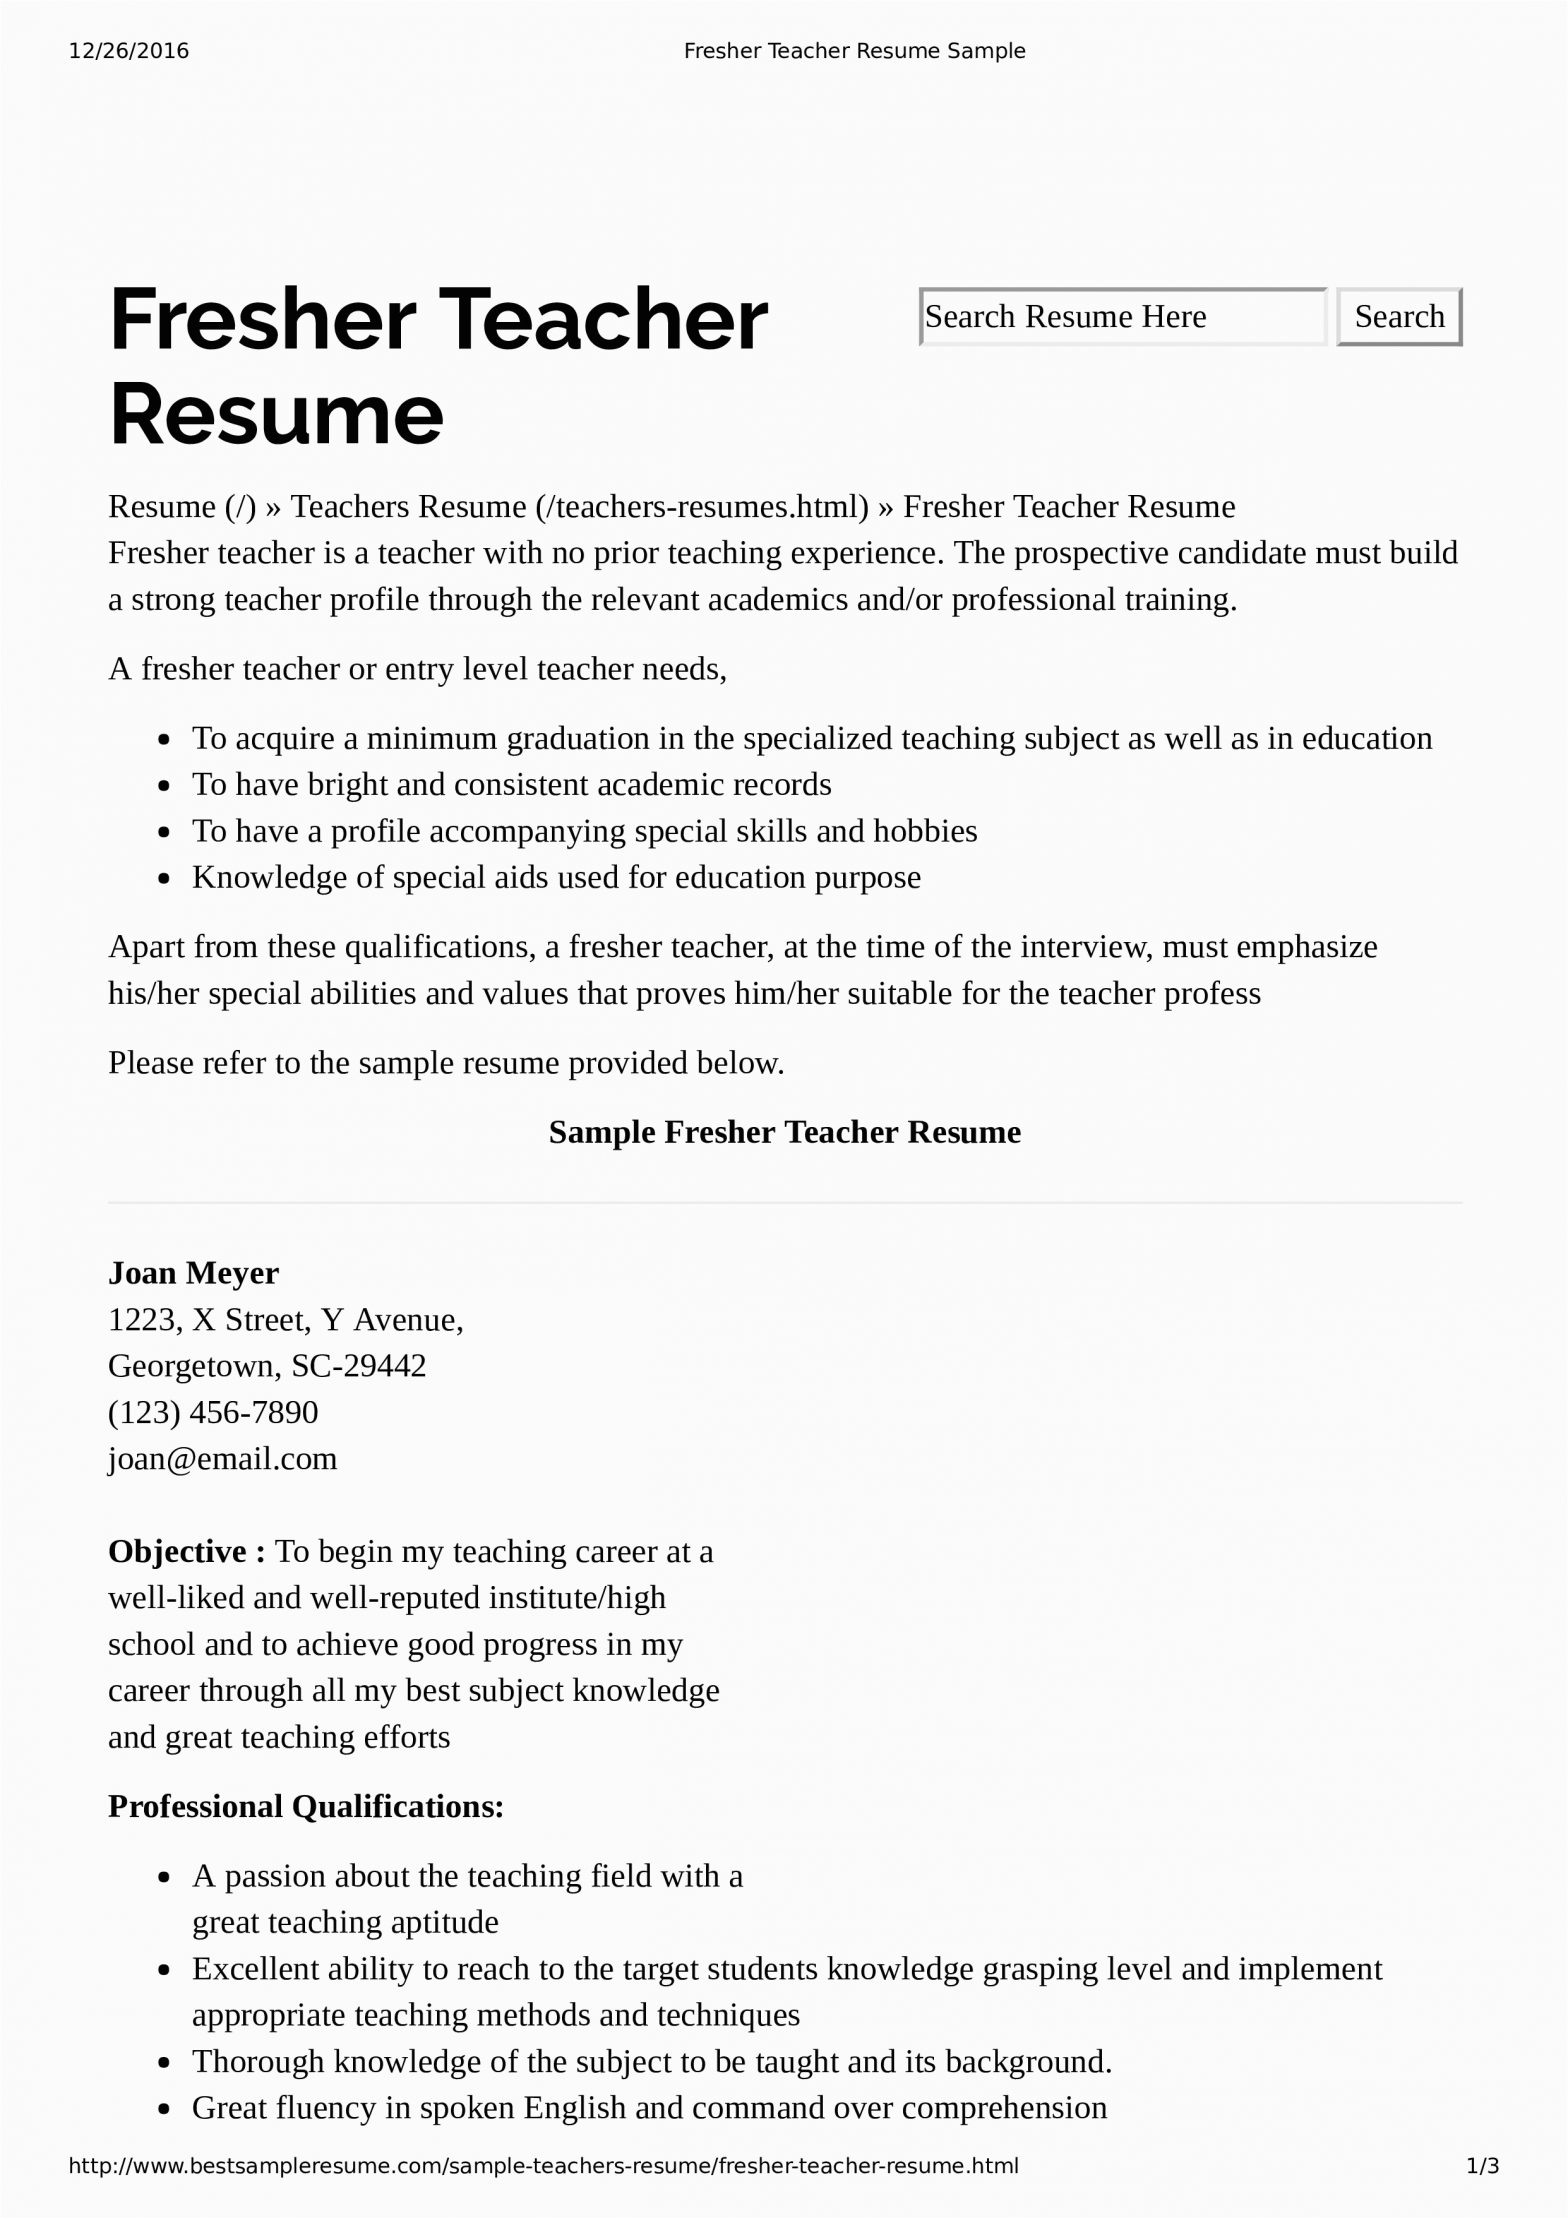 Sample Resume for Teaching Position with No Experience Preschool Teacher Resume with No Experience